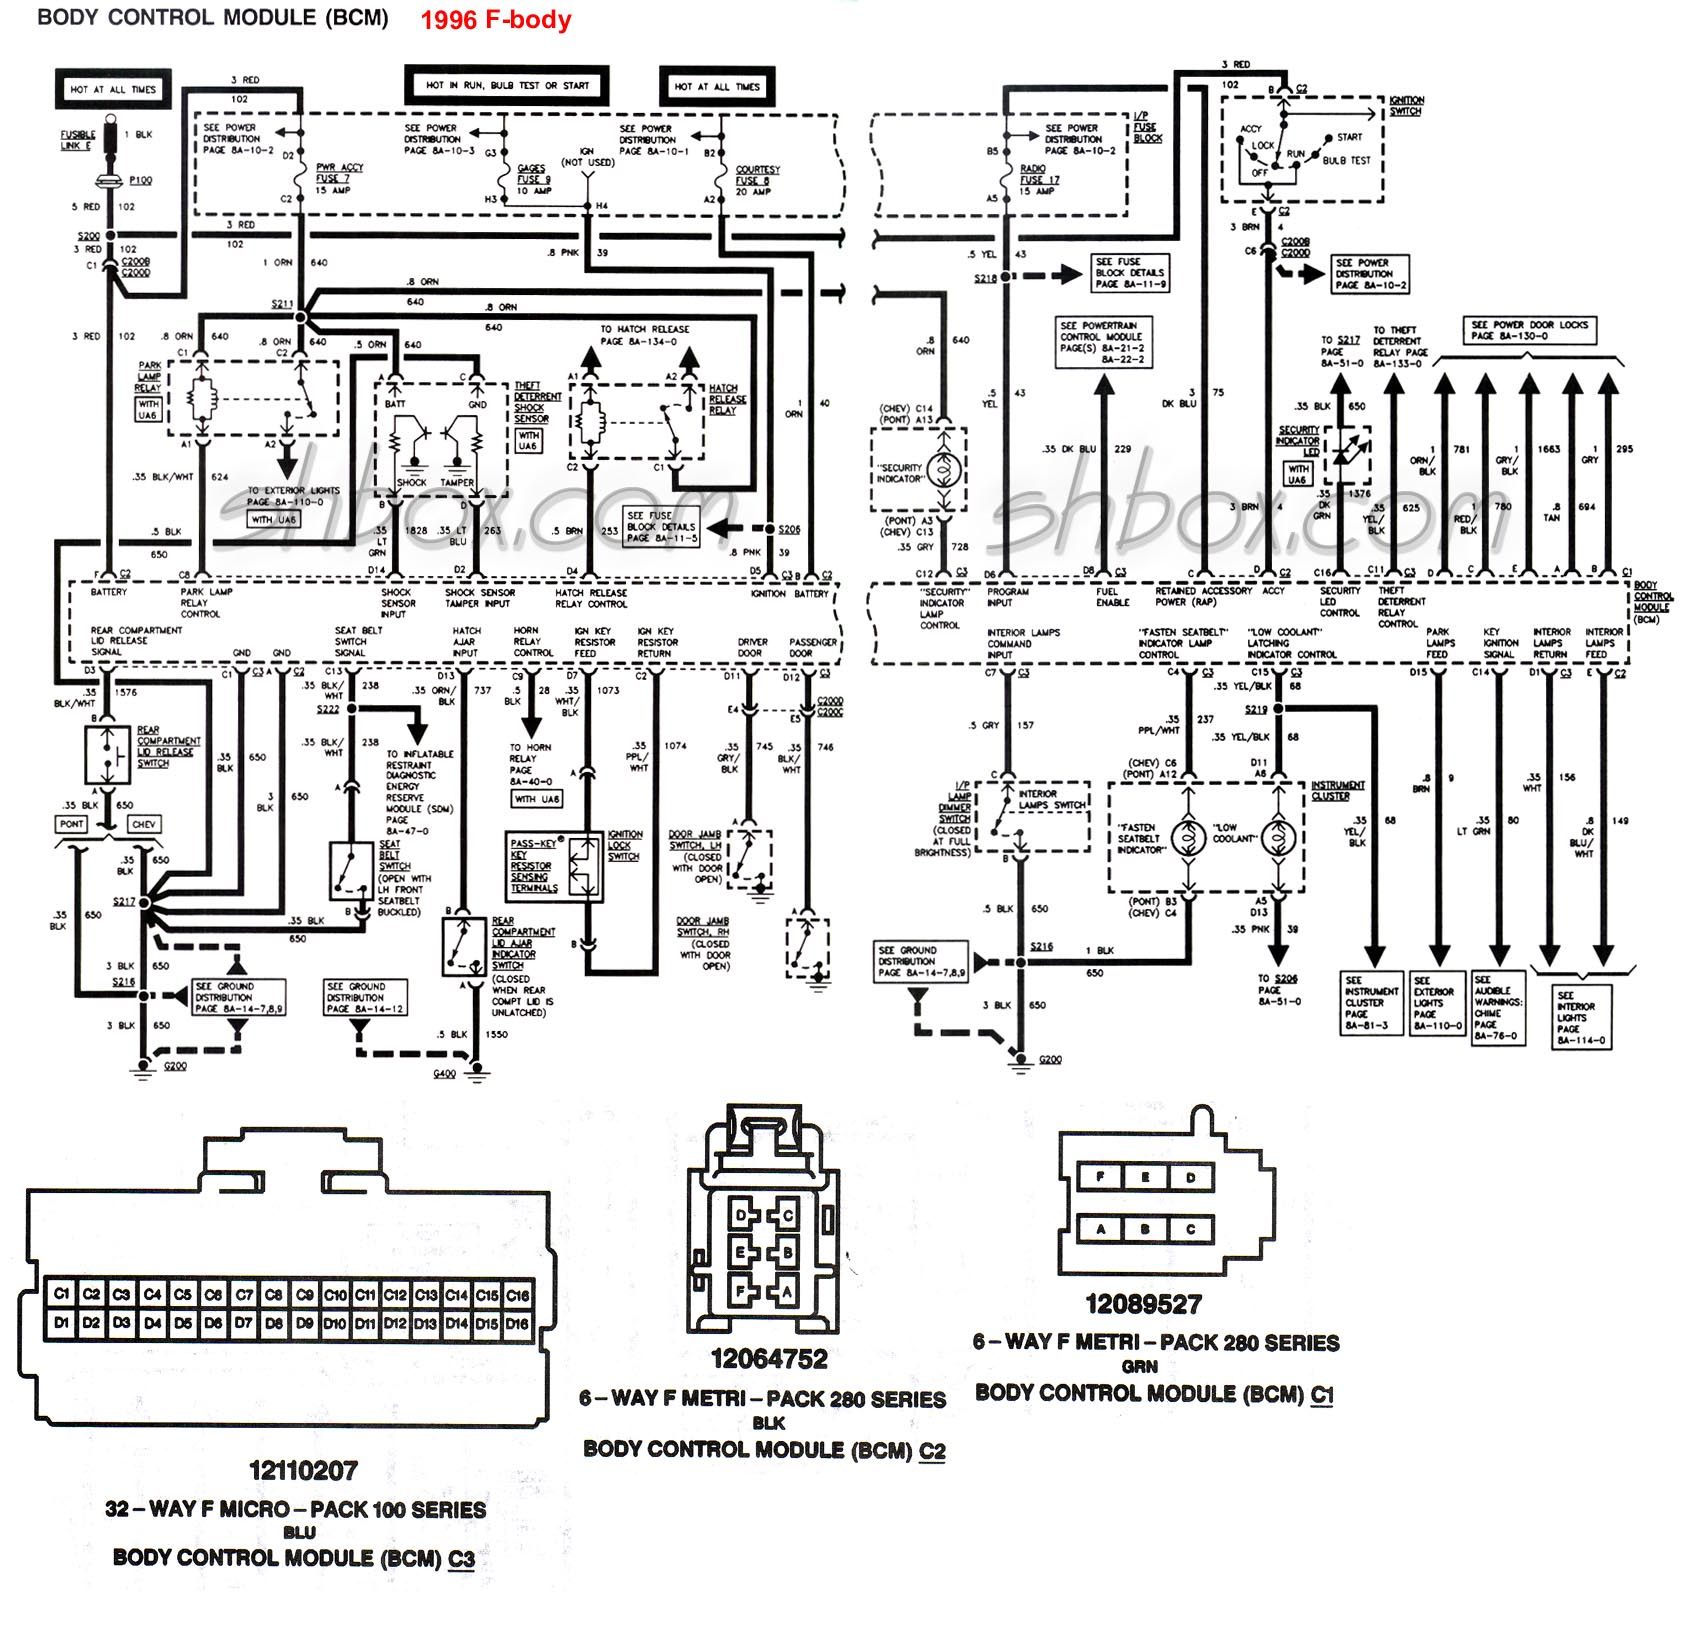 Chevy Colorado Bcm Wiring Diagram on 2000 dodge ram power window fuse